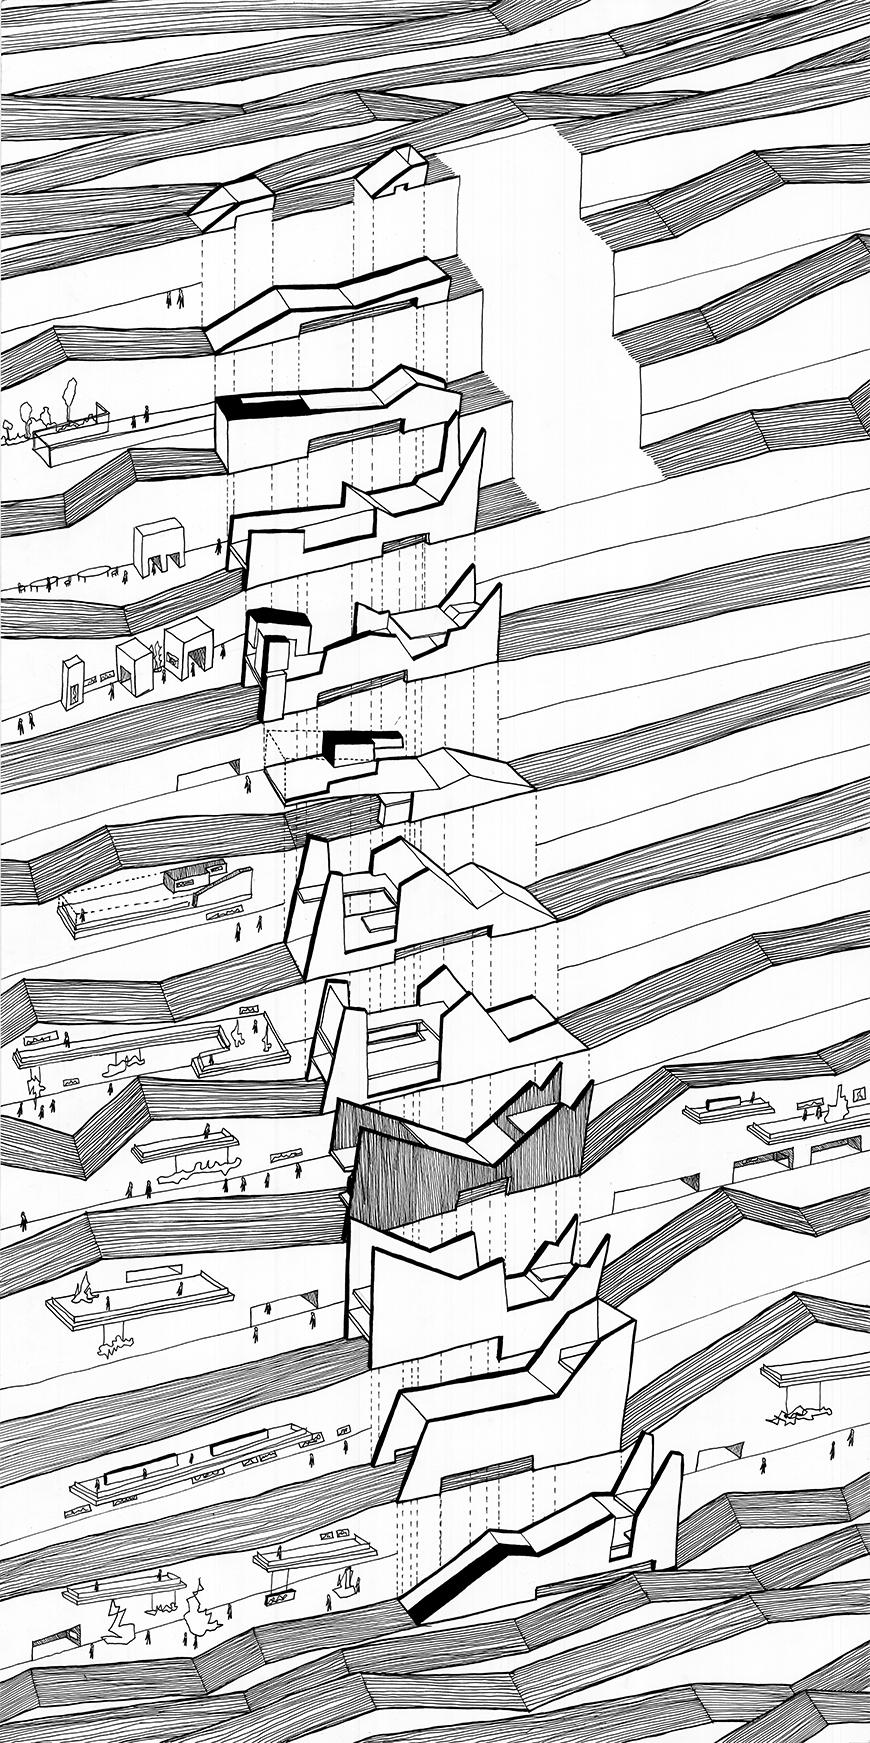 Exploded axonometric drawing in aerial perspective of the project, showing each of the bands, or layers individually,  drawn freehand with human scale figures and dense lines indicating texture or shading.